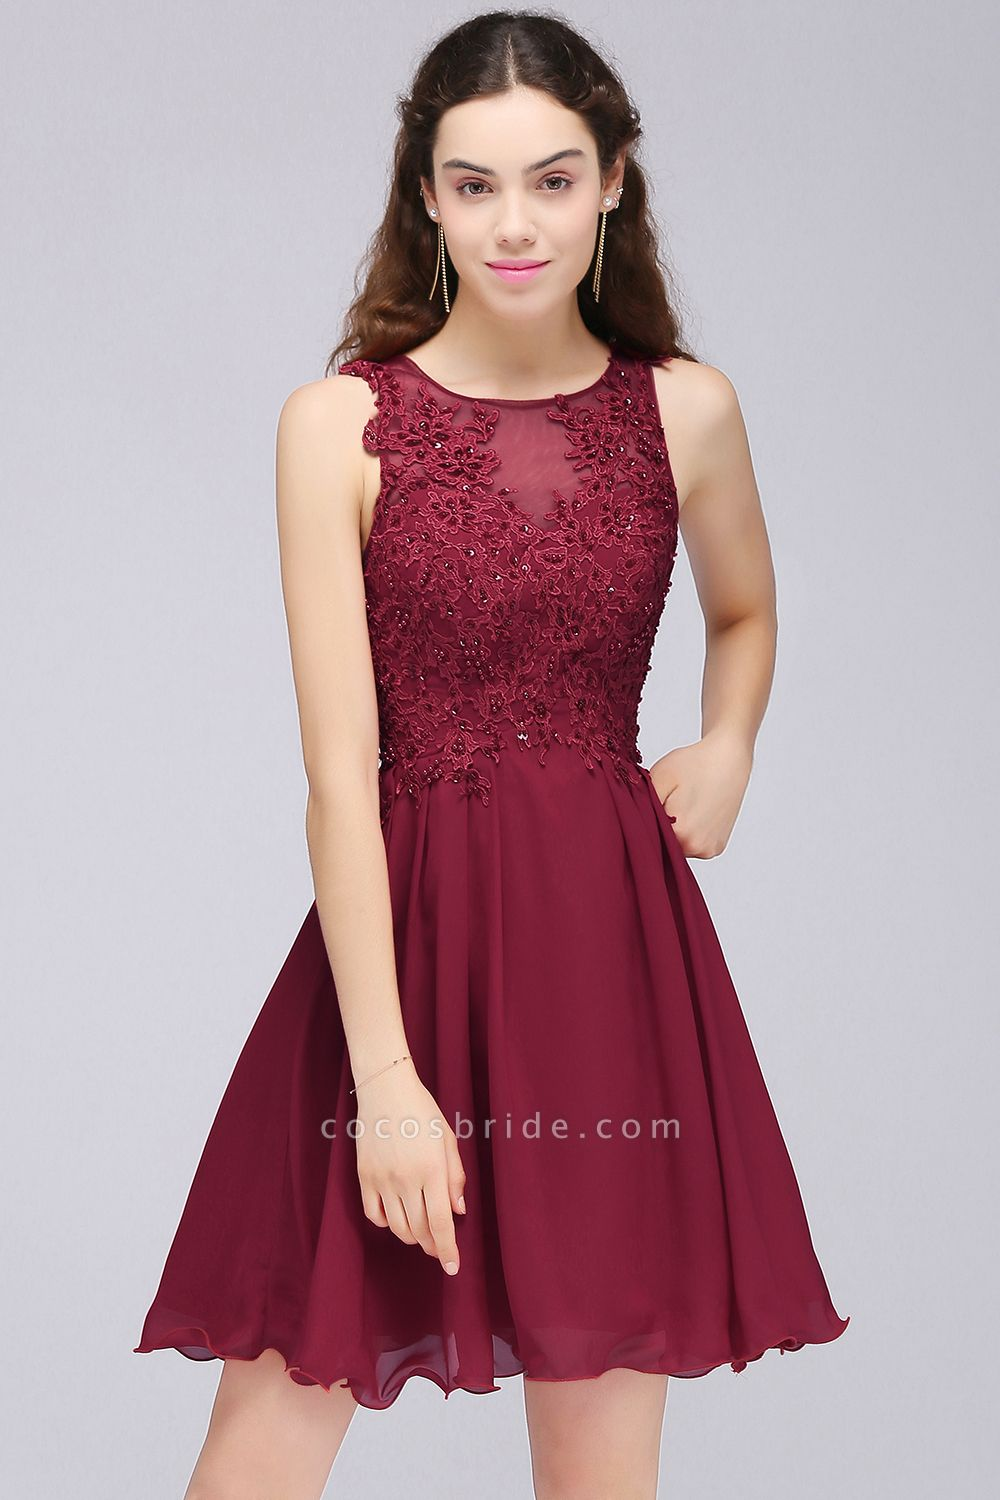 A-line Chiffon Lace Jewel Sleeveless Short Bridesmaid Dresses with Appliques